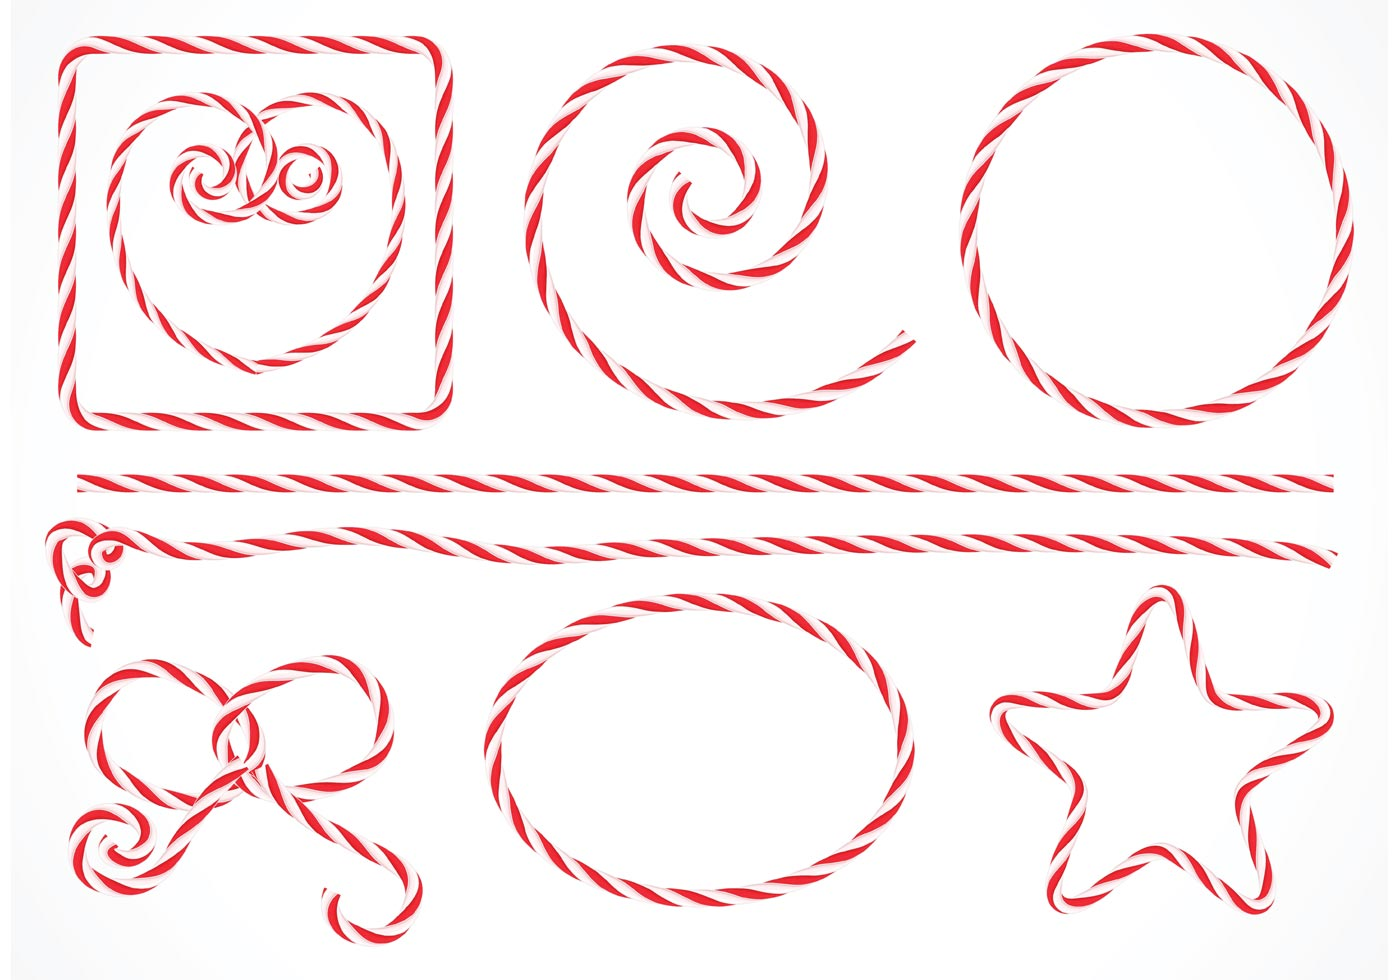 Flat X F moreover  further Free Vector Isolated Candy Stripe Rope Set as well Abstract Valentine S Day Hearts Border additionally Candy Cane Clipart Red Candy. on spiral candy border